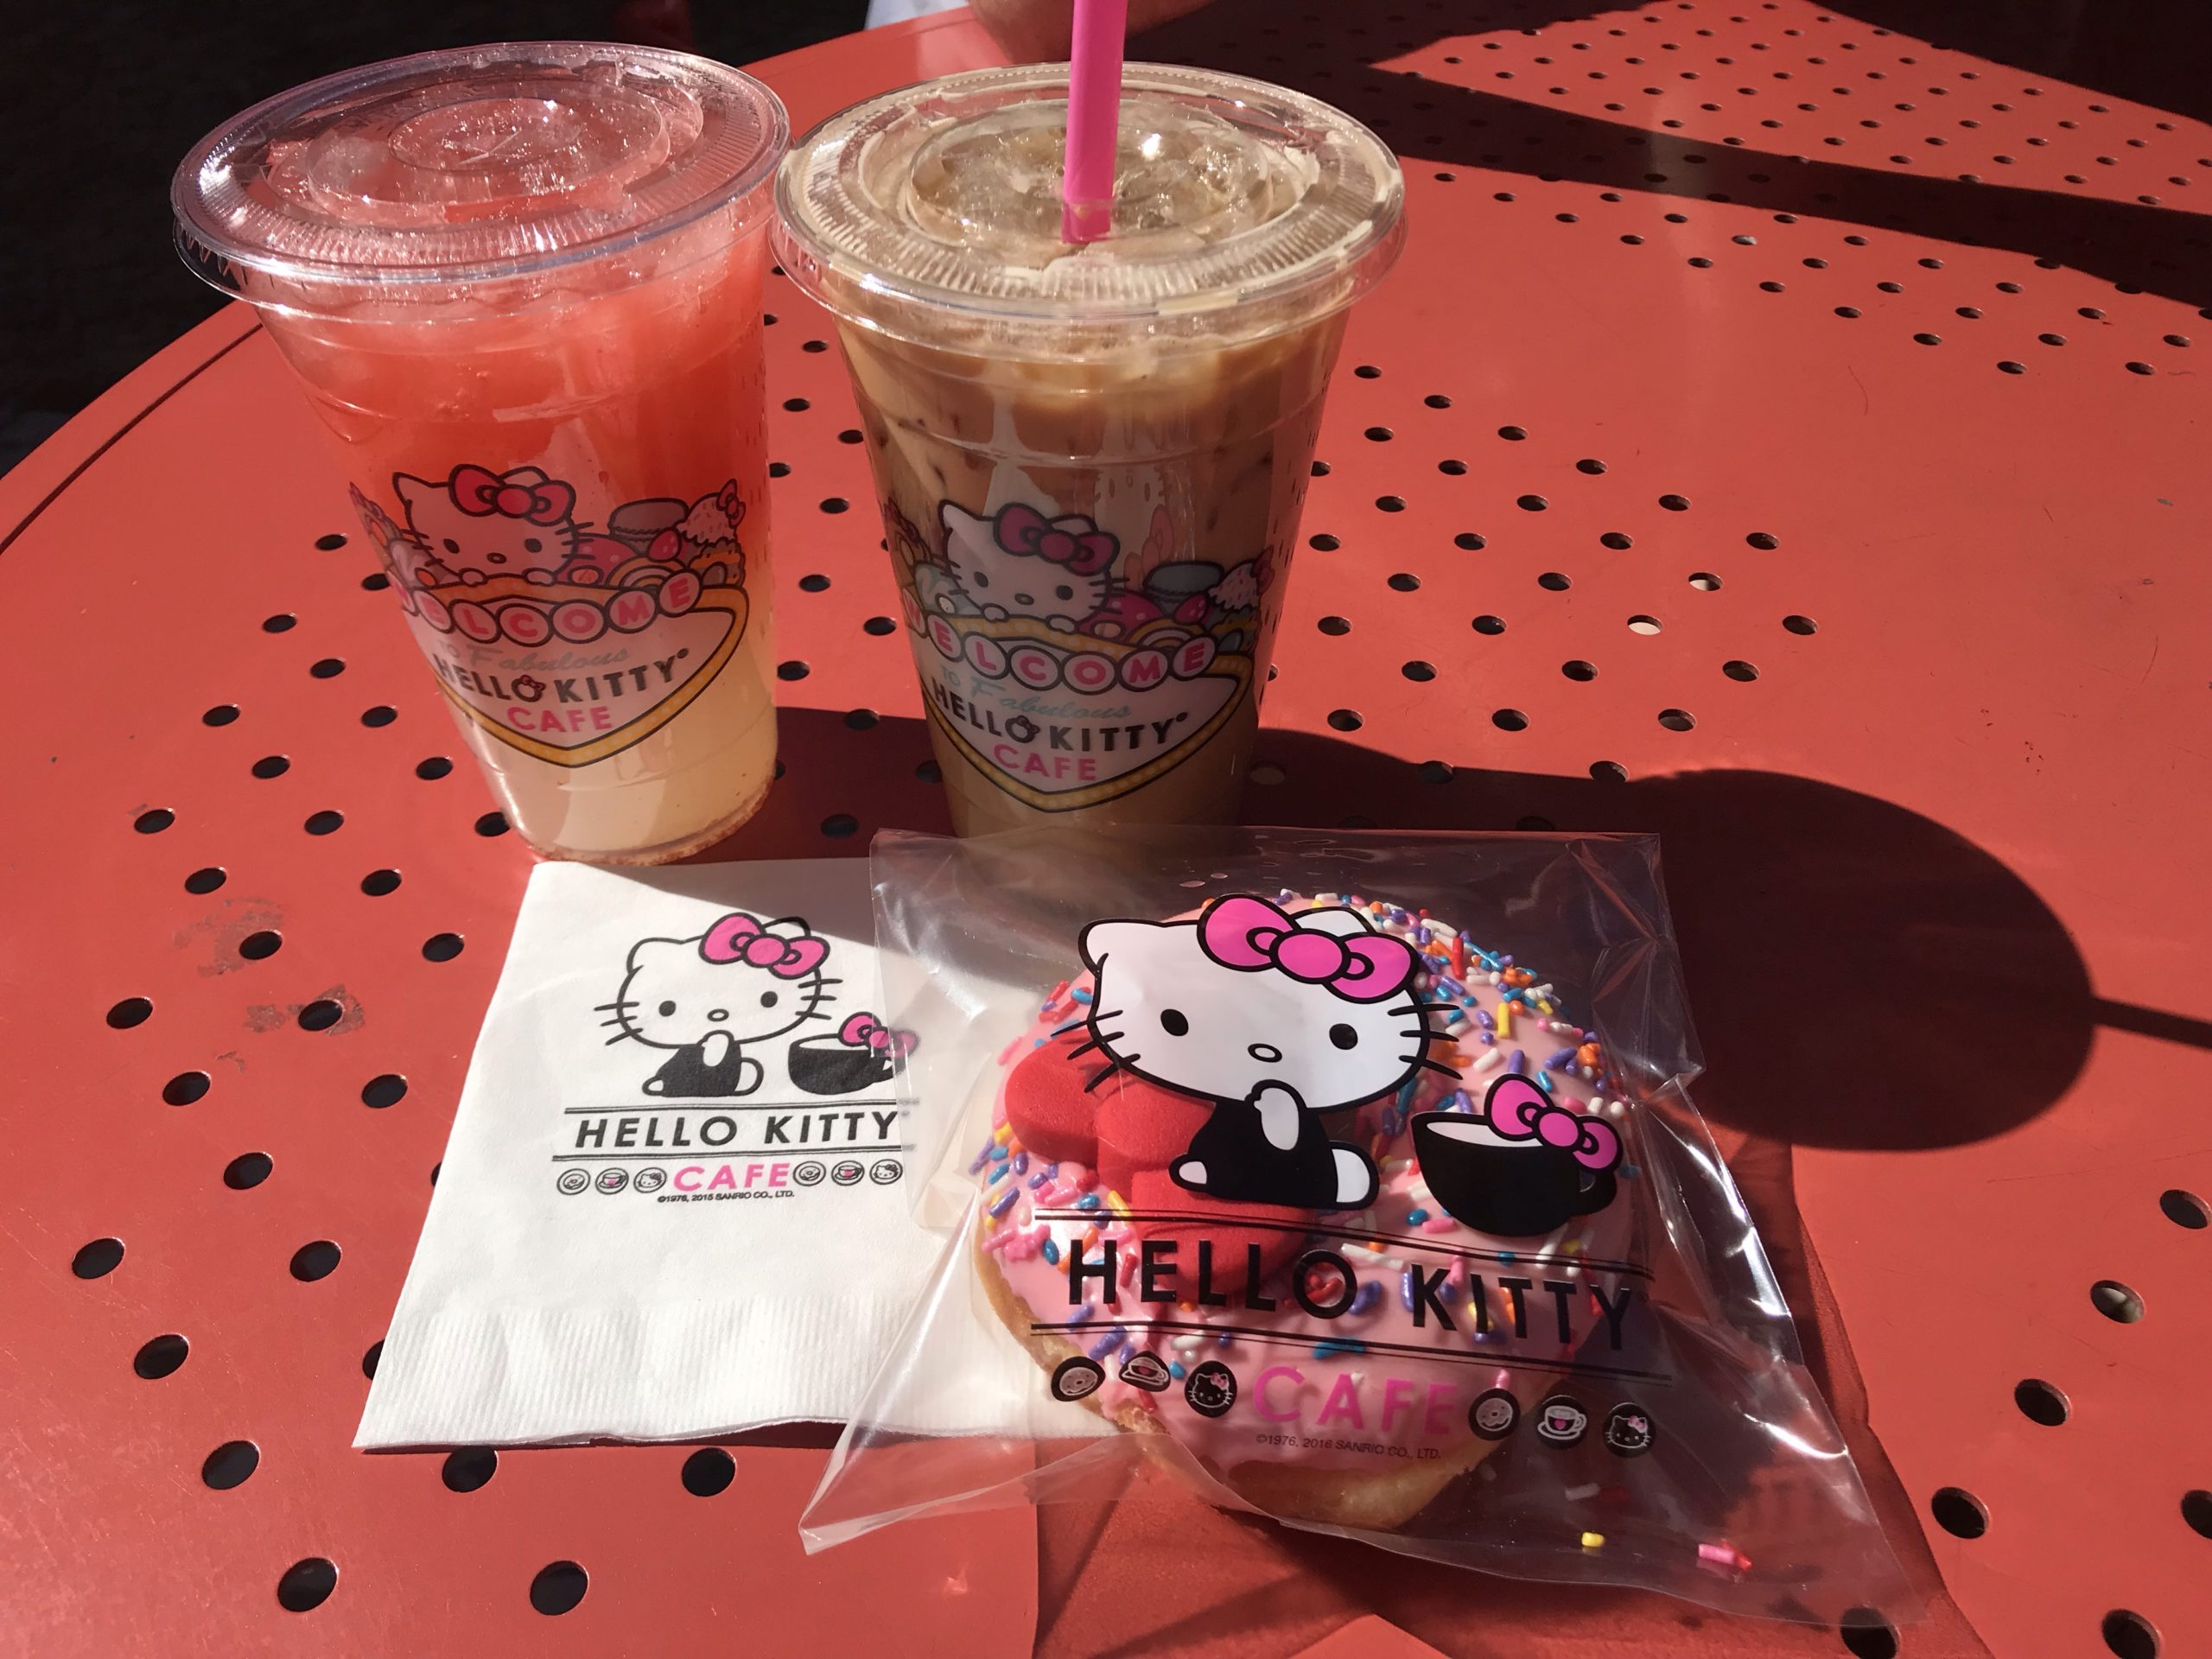 Where to eat in Las Vegas – Hello Kitty Cafe